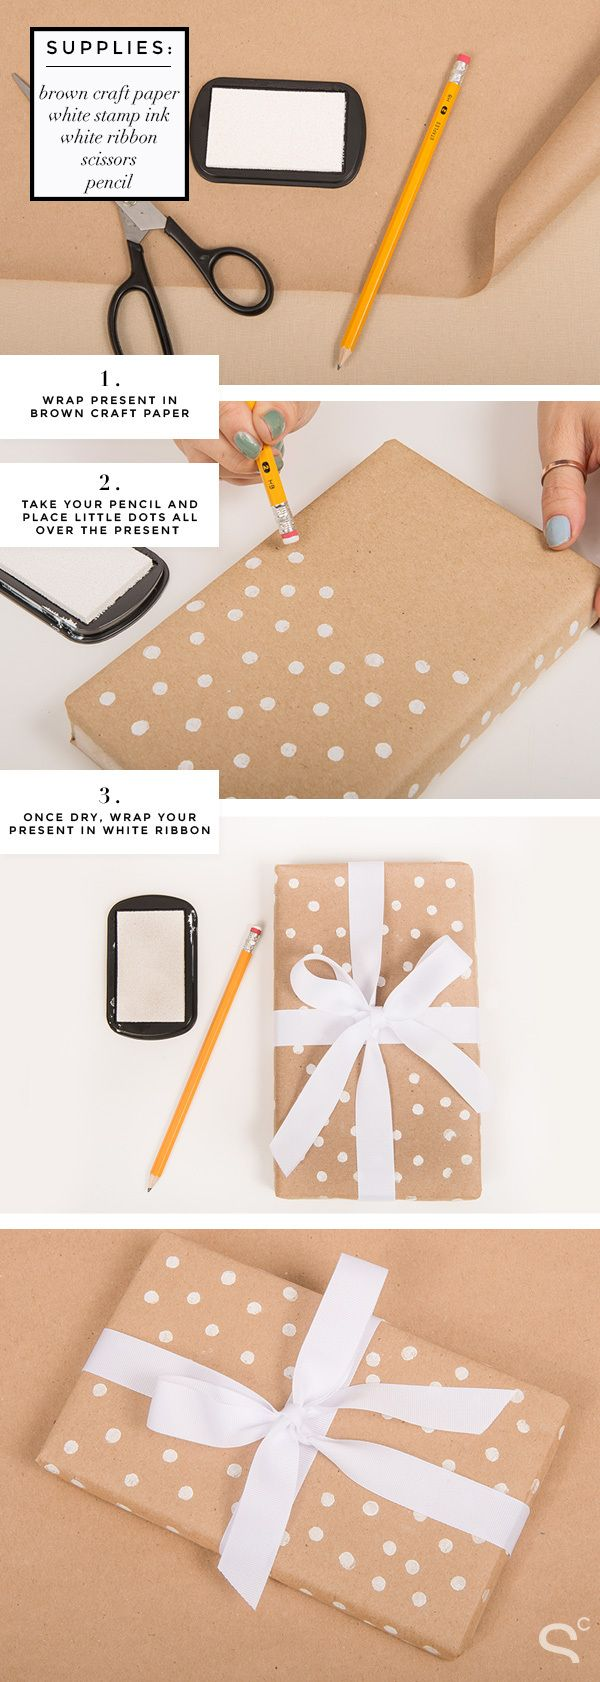 DIY Gift Wrapping with Polka Dot Gift Paper.....25 Adorable and Creative DIY Gift Wrapping Ideas for All Occasions #DIYCrafts